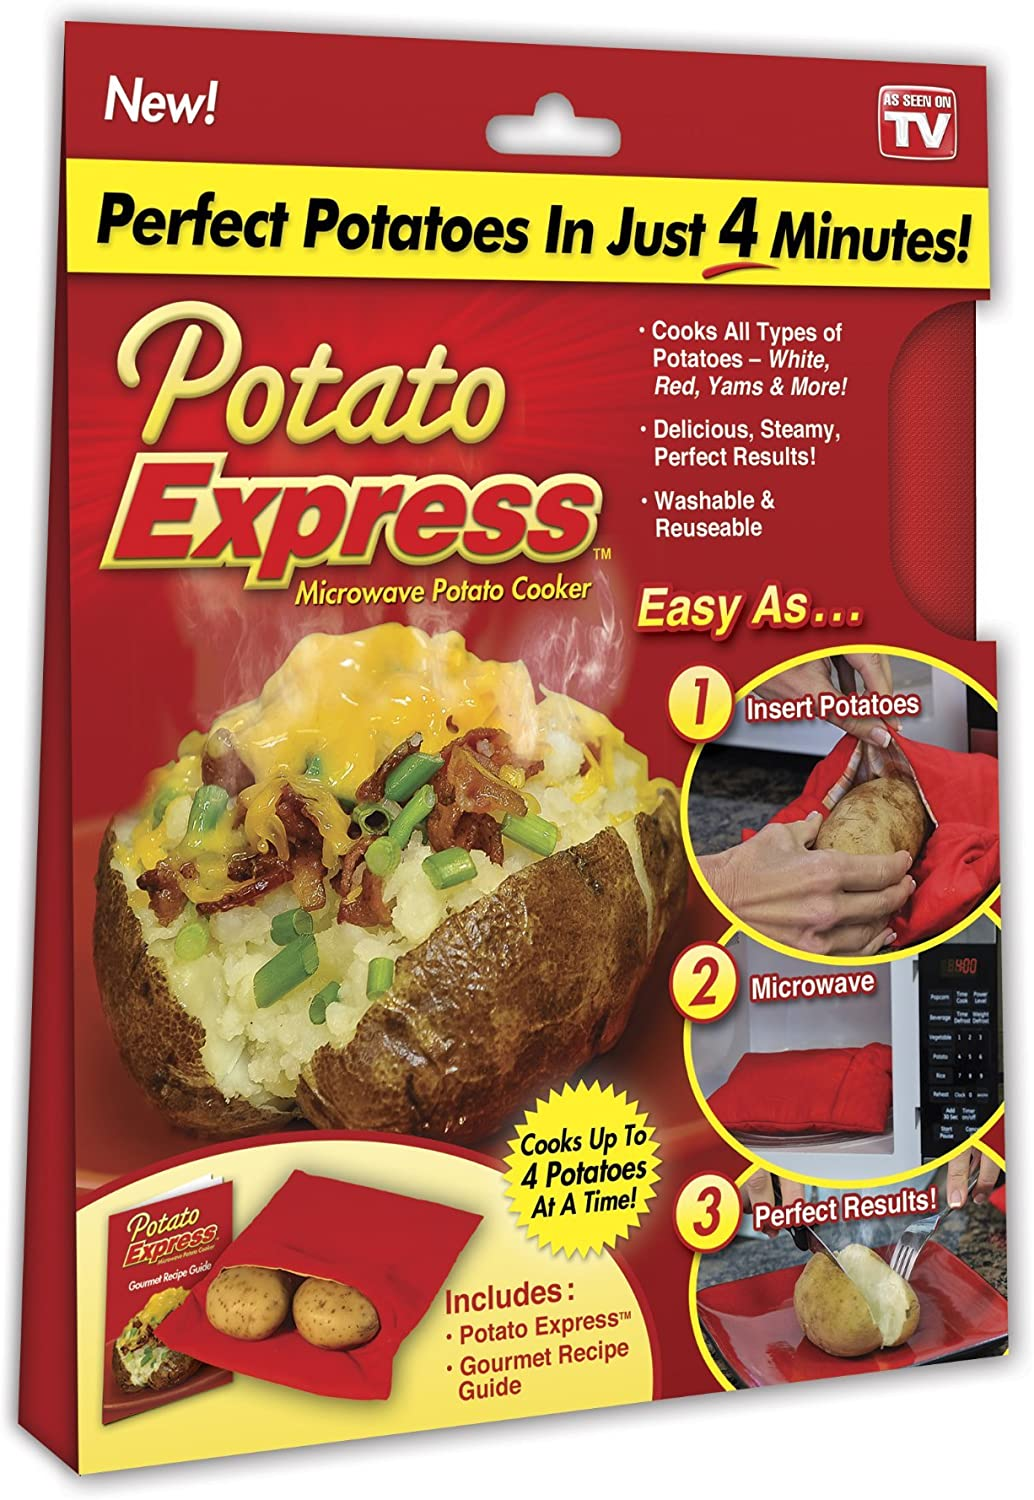 Ontel 1000188 Microwave Cooker, Perfect Potatoes in Just 4 Minutes – As Seen On Tv, Small